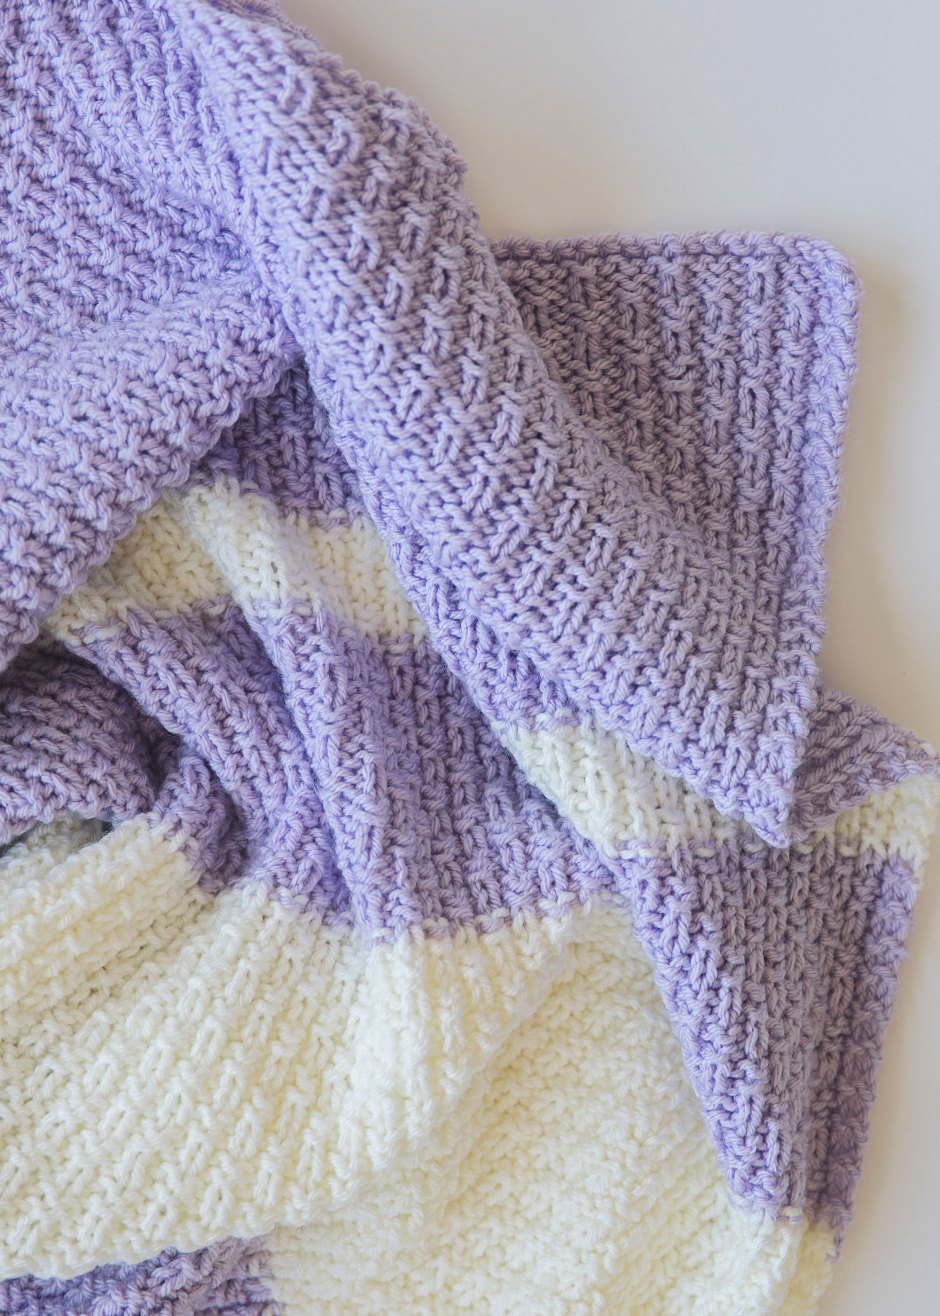 Knitting Patterns For Baby Blankets Easy : Easy Knit Baby Blanket Pattern - Leelee KnitsLeelee Knits